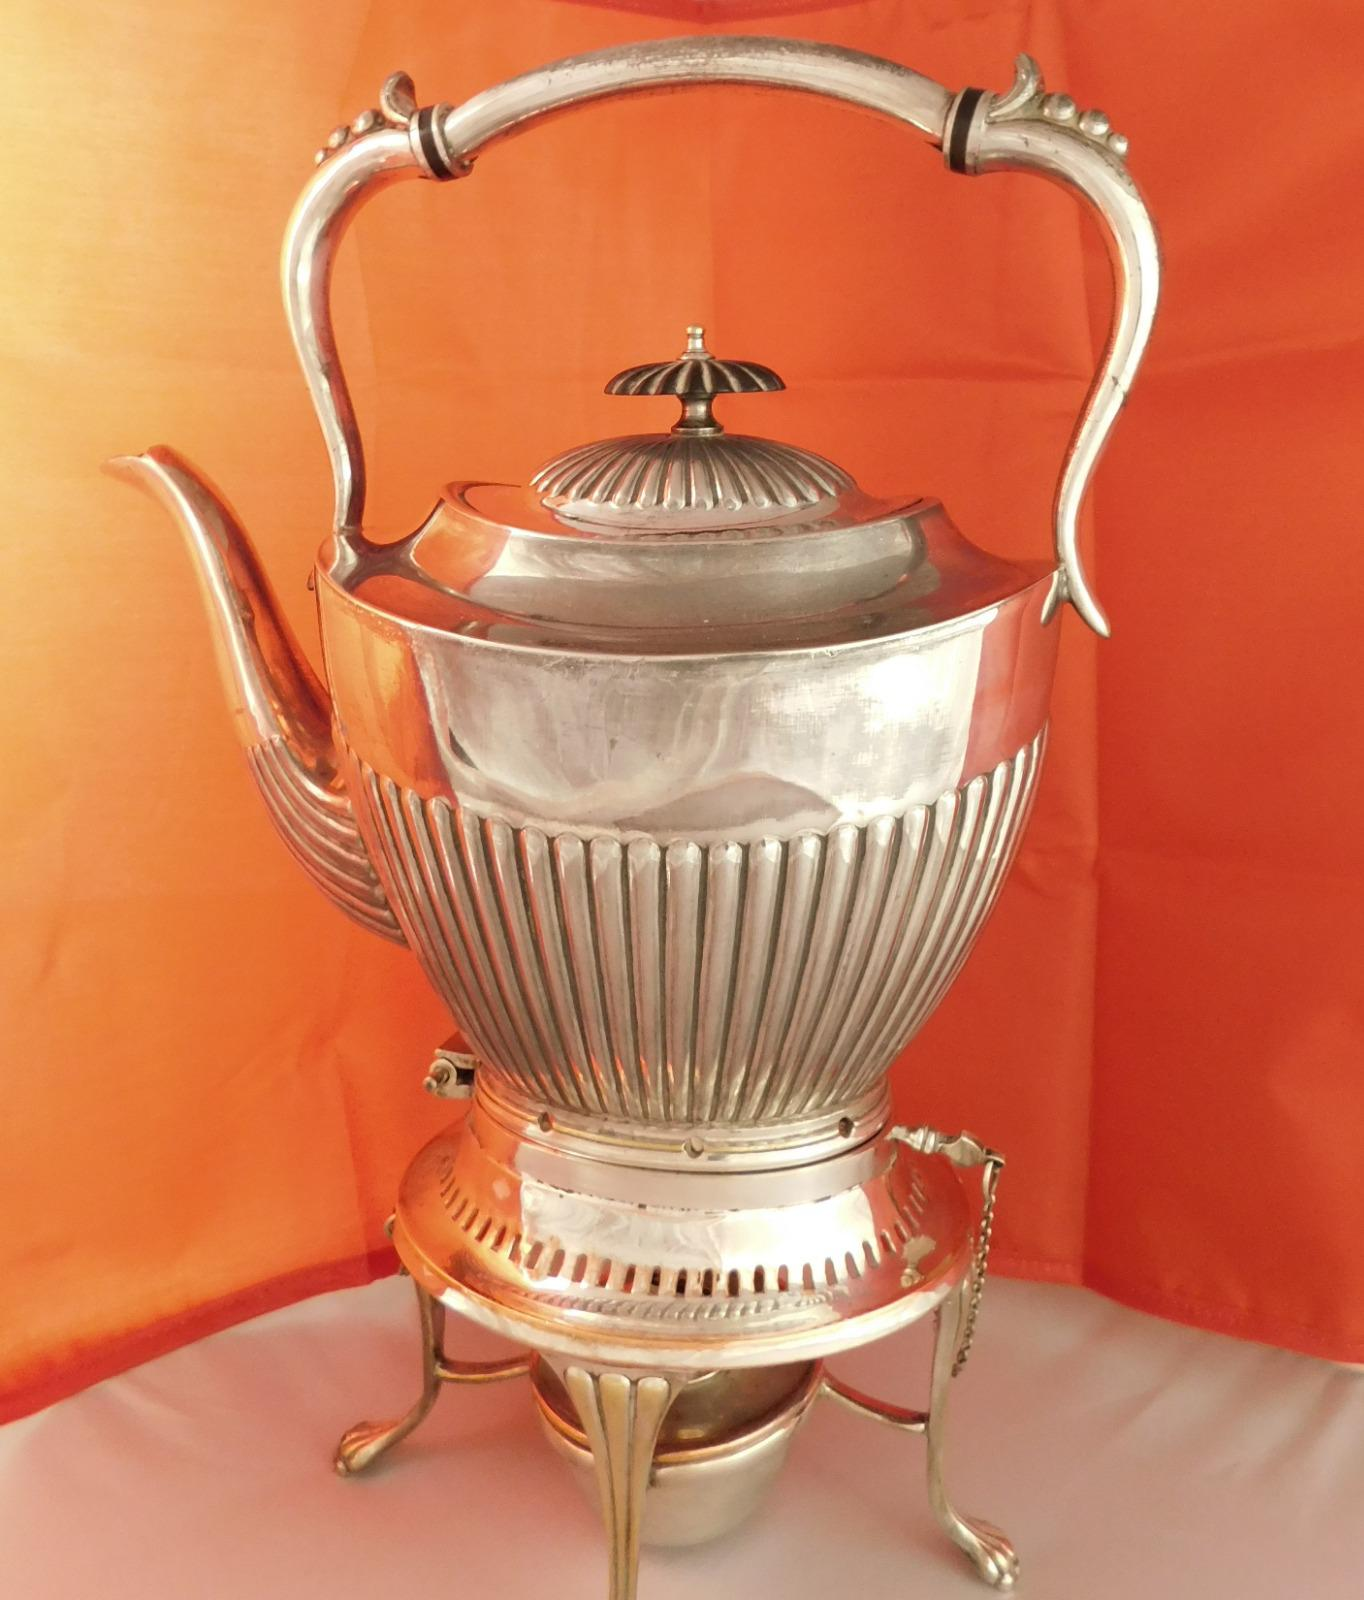 Barker Brothers Victorian 'Britanoid' Silver Plated Spirit Kettle (1 of 1)